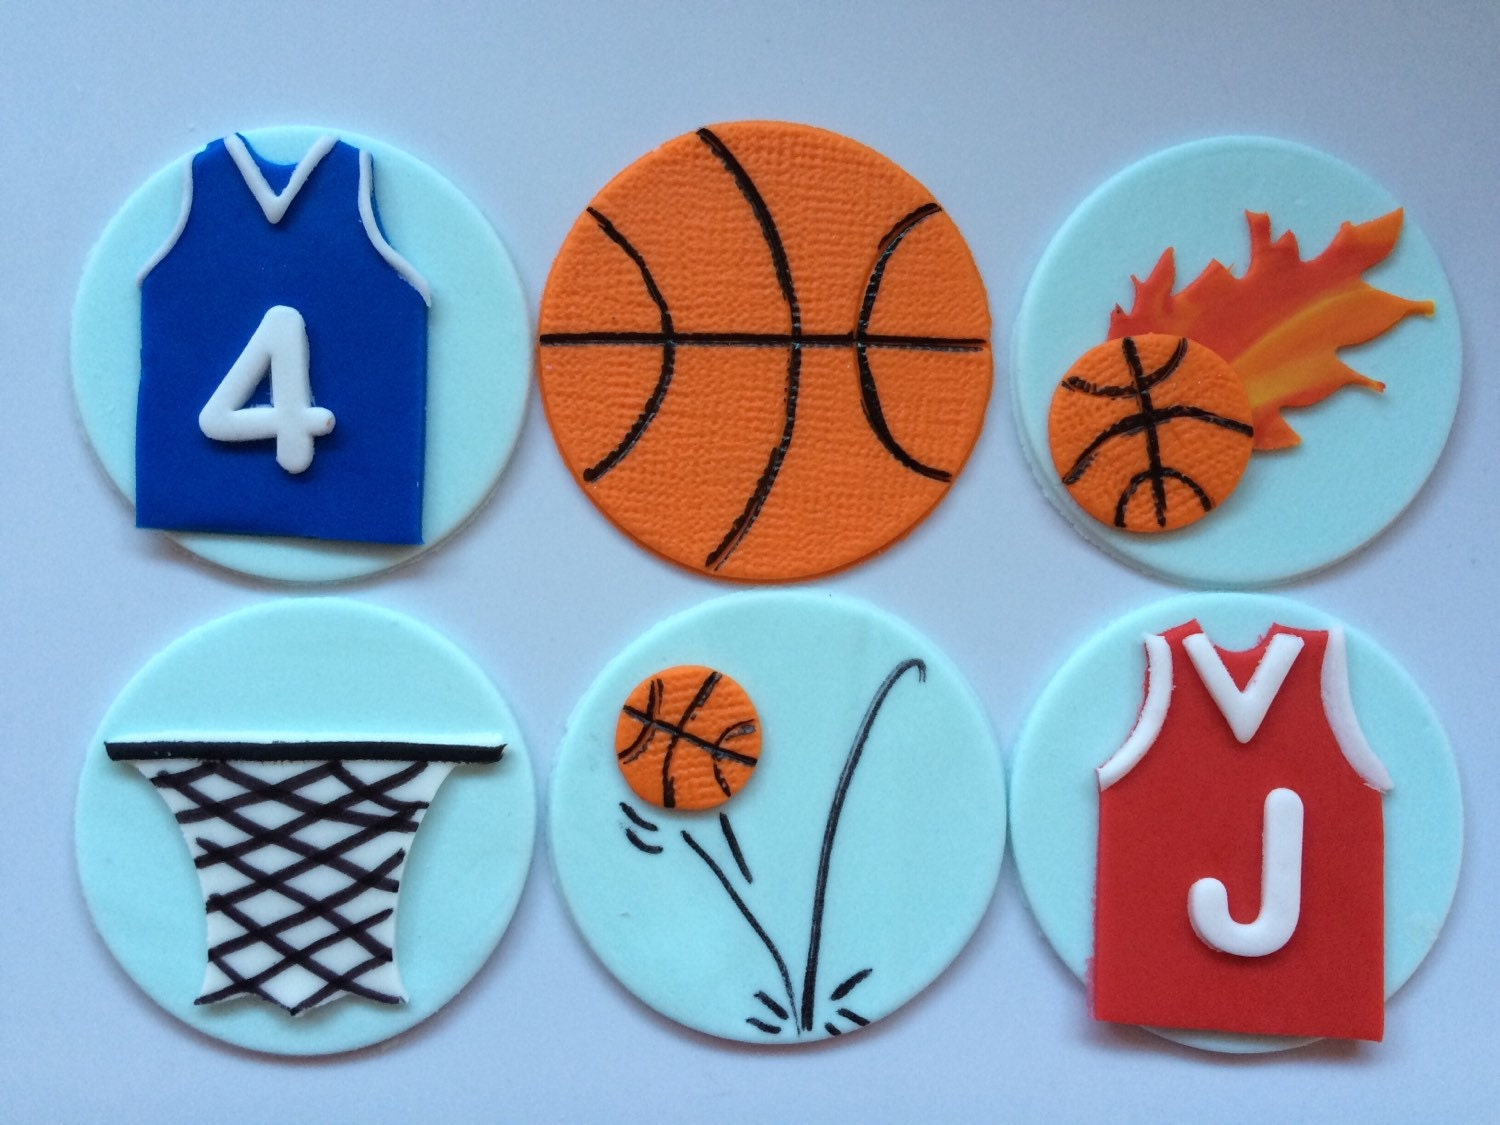 Edible Cake Images Nj : 12 basketball cupcake toppers theme edible fondant ball net